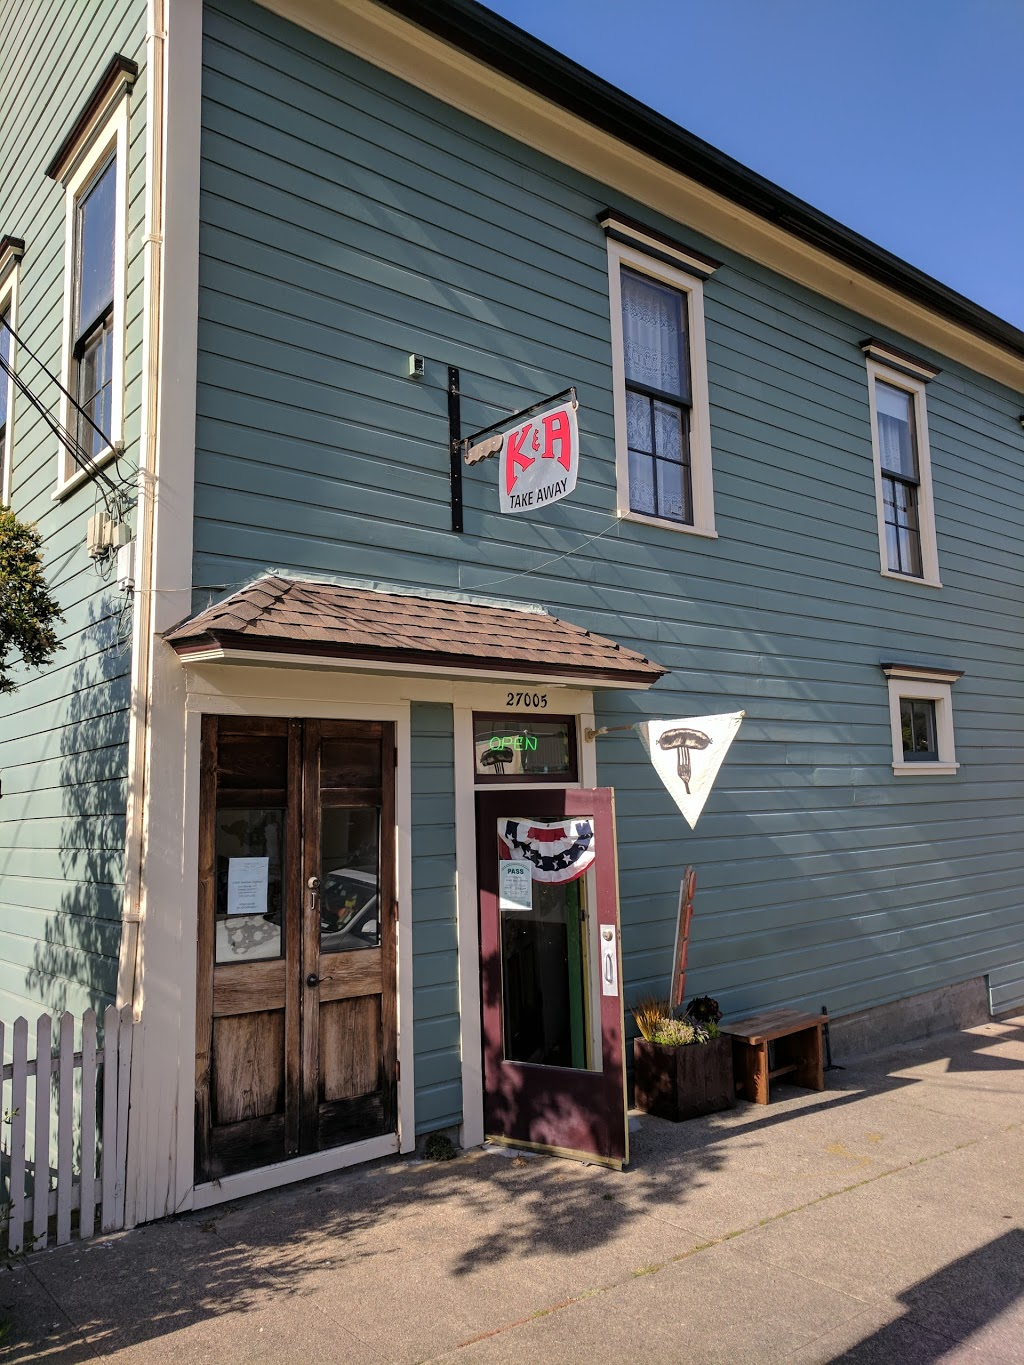 K&A Take Away - meal takeaway  | Photo 2 of 9 | Address: 13 Dilon Beach Road, Tomales, CA 94971, USA | Phone: (707) 878-2969